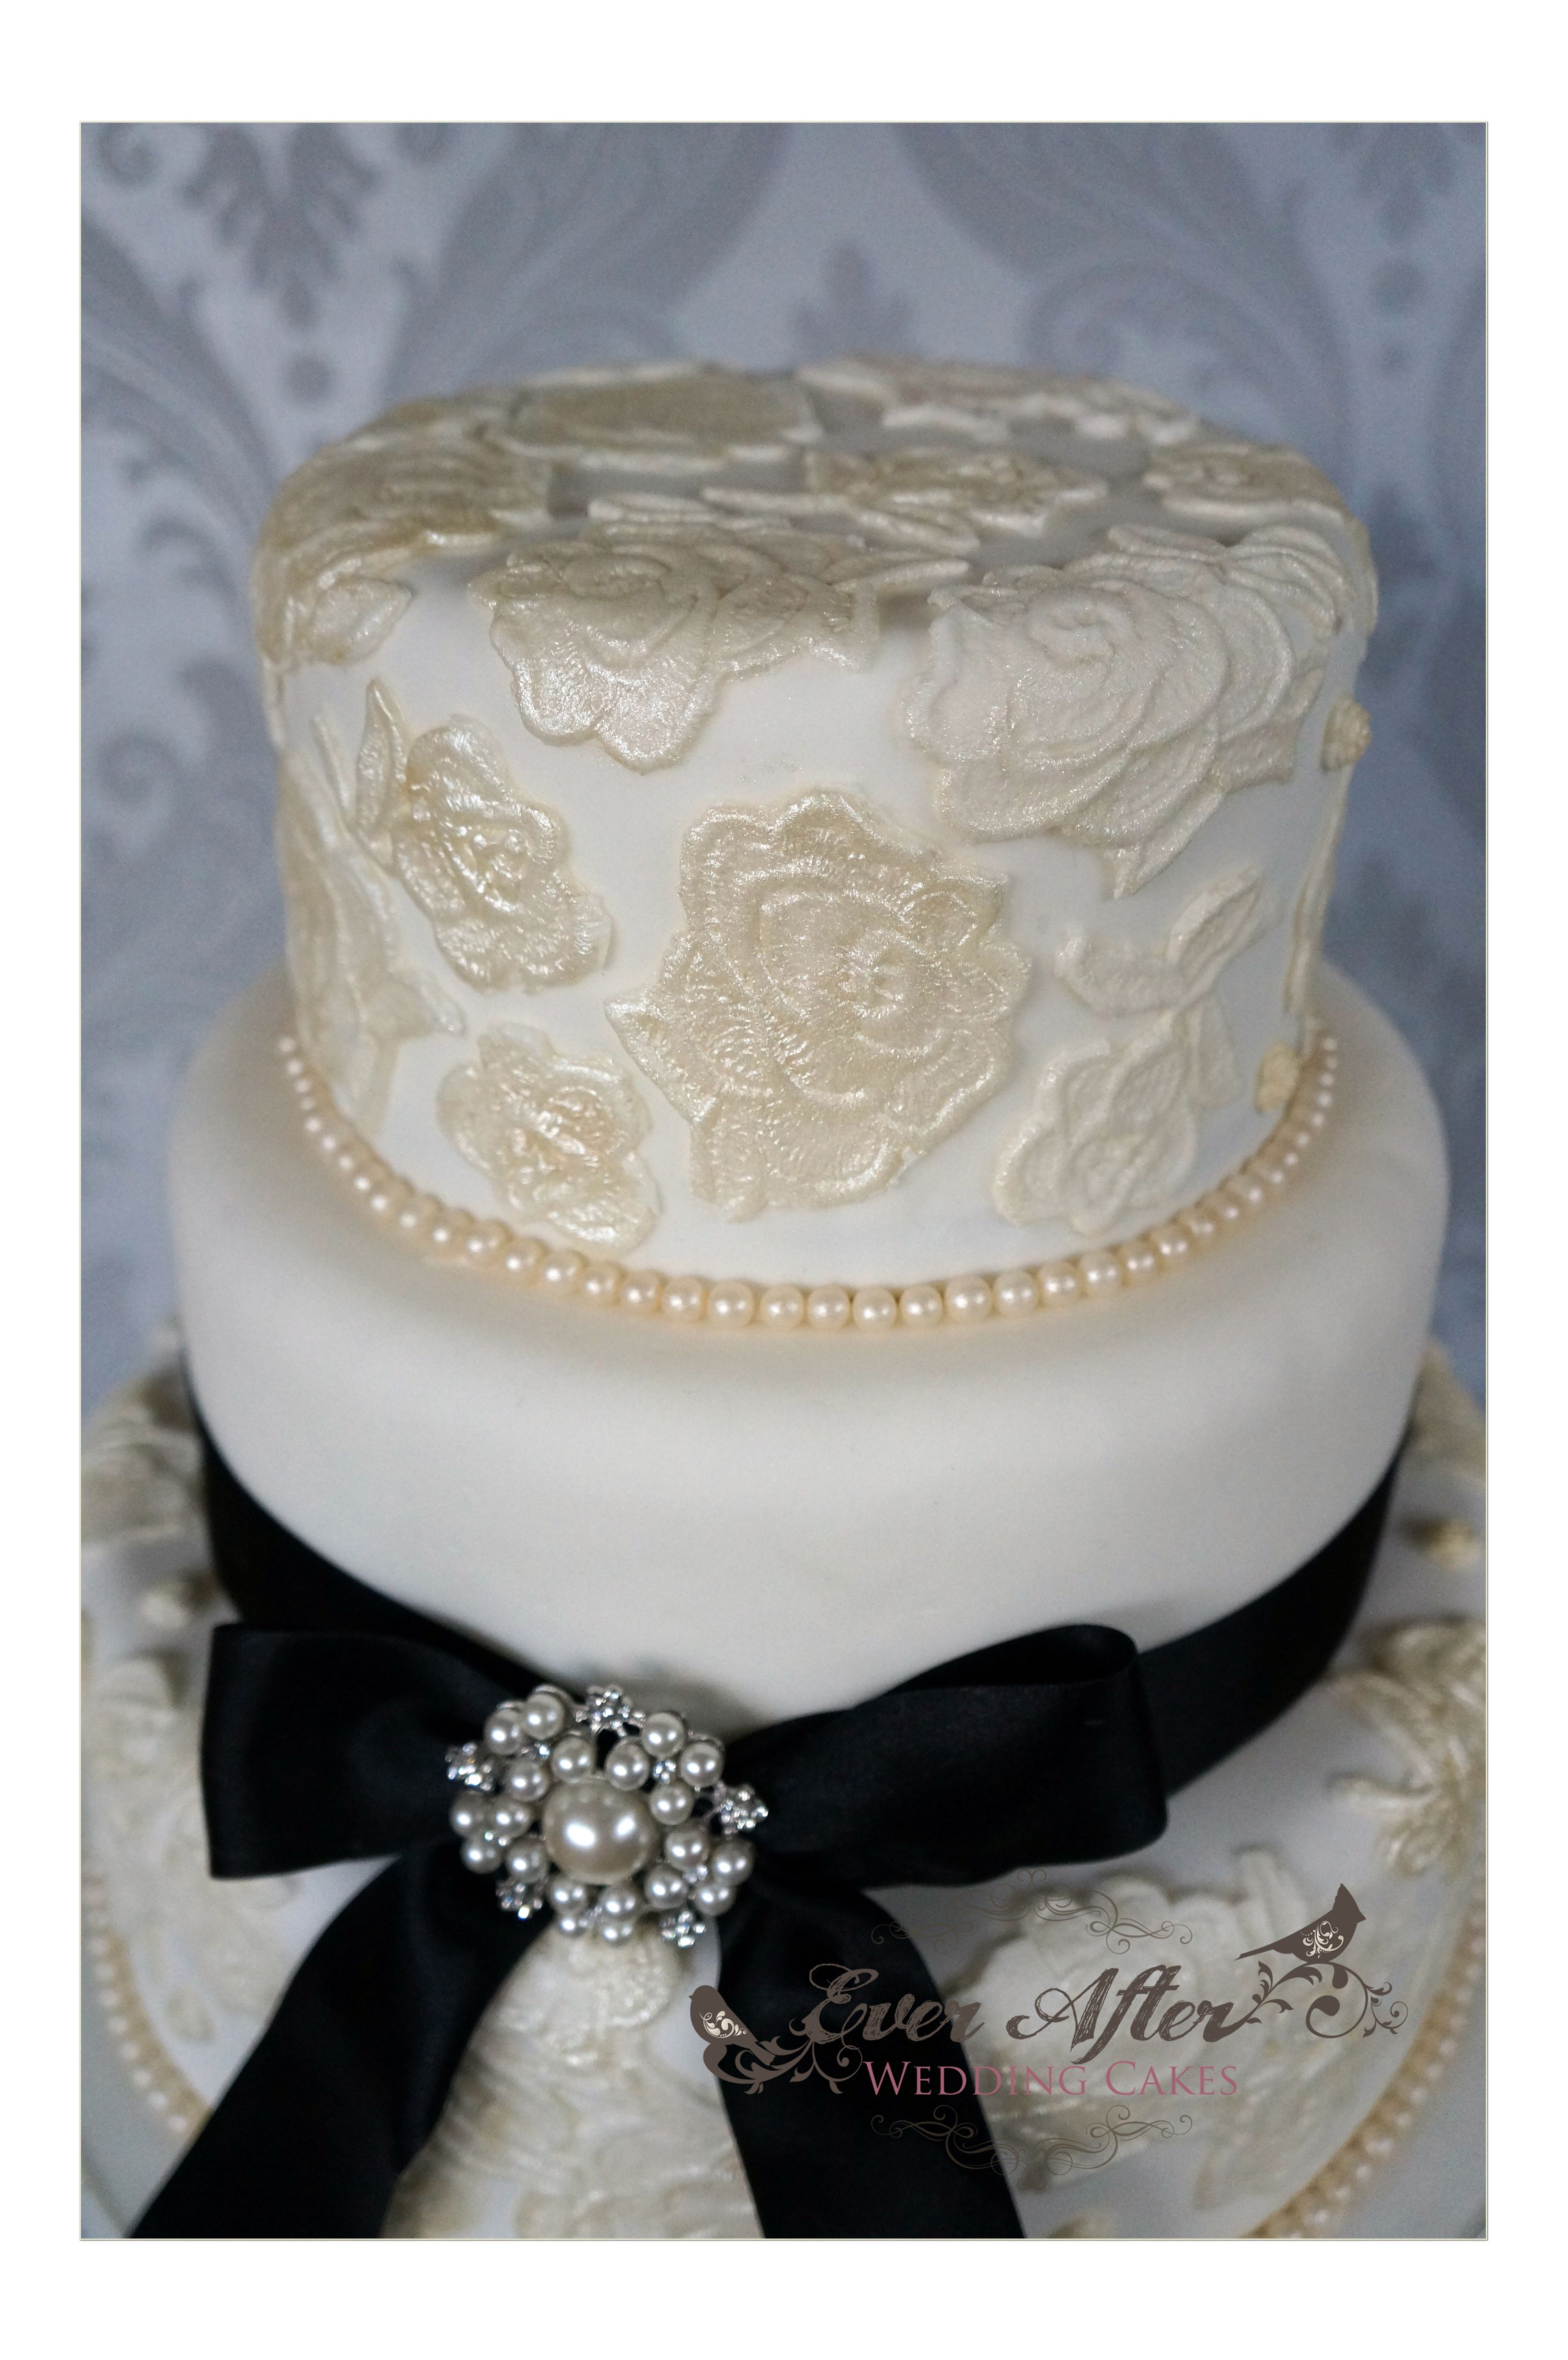 Elegant Wedding Cake in Ivory Lace, Pearls & Black Ribbon. 3 Tiers ...